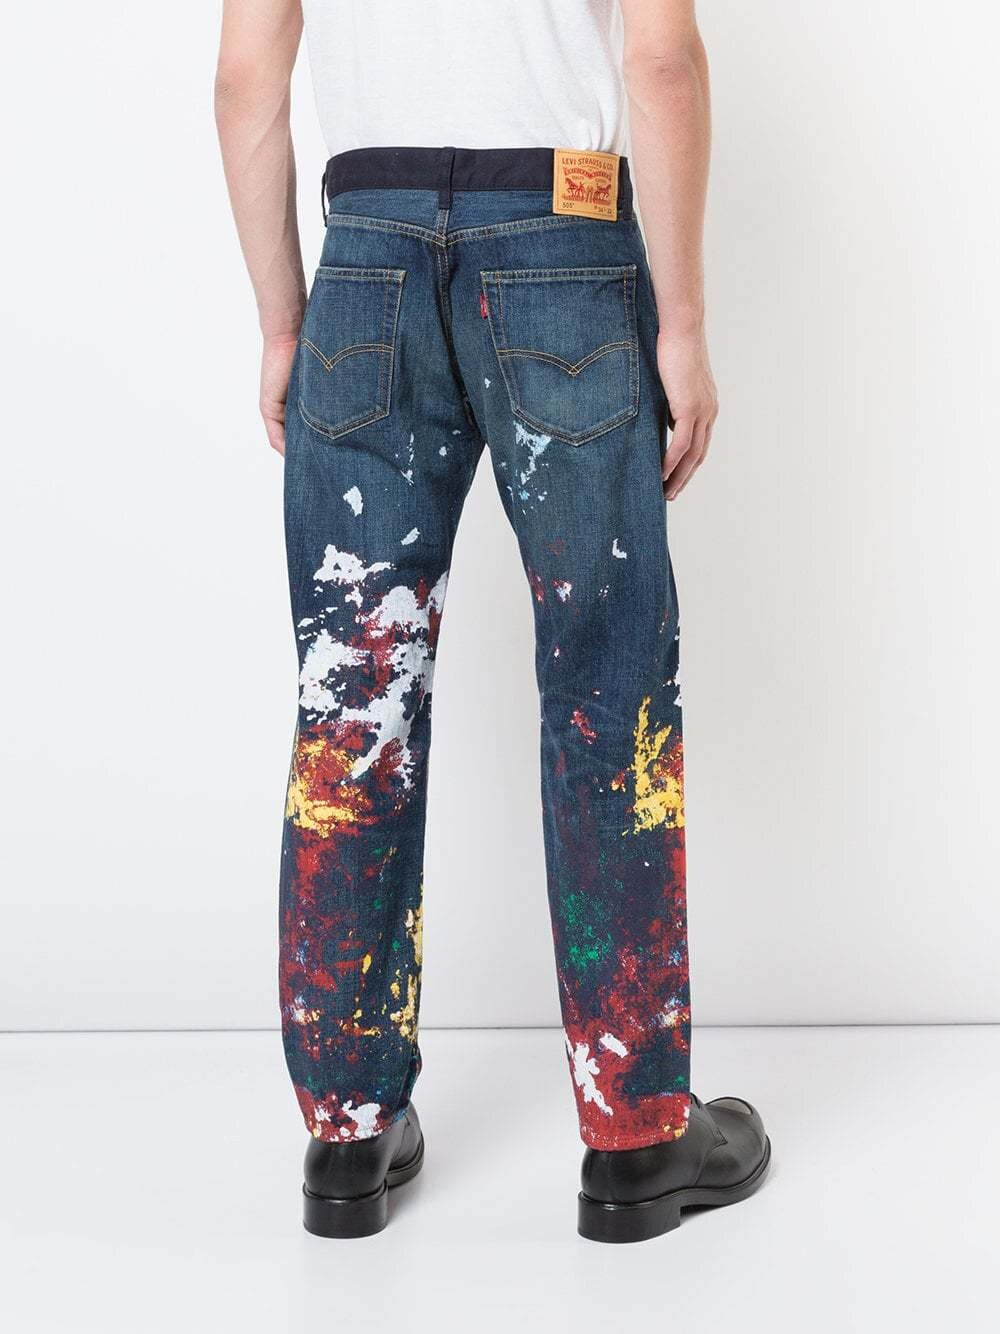 Splash Some Color With Diy Painted Clothes Garb